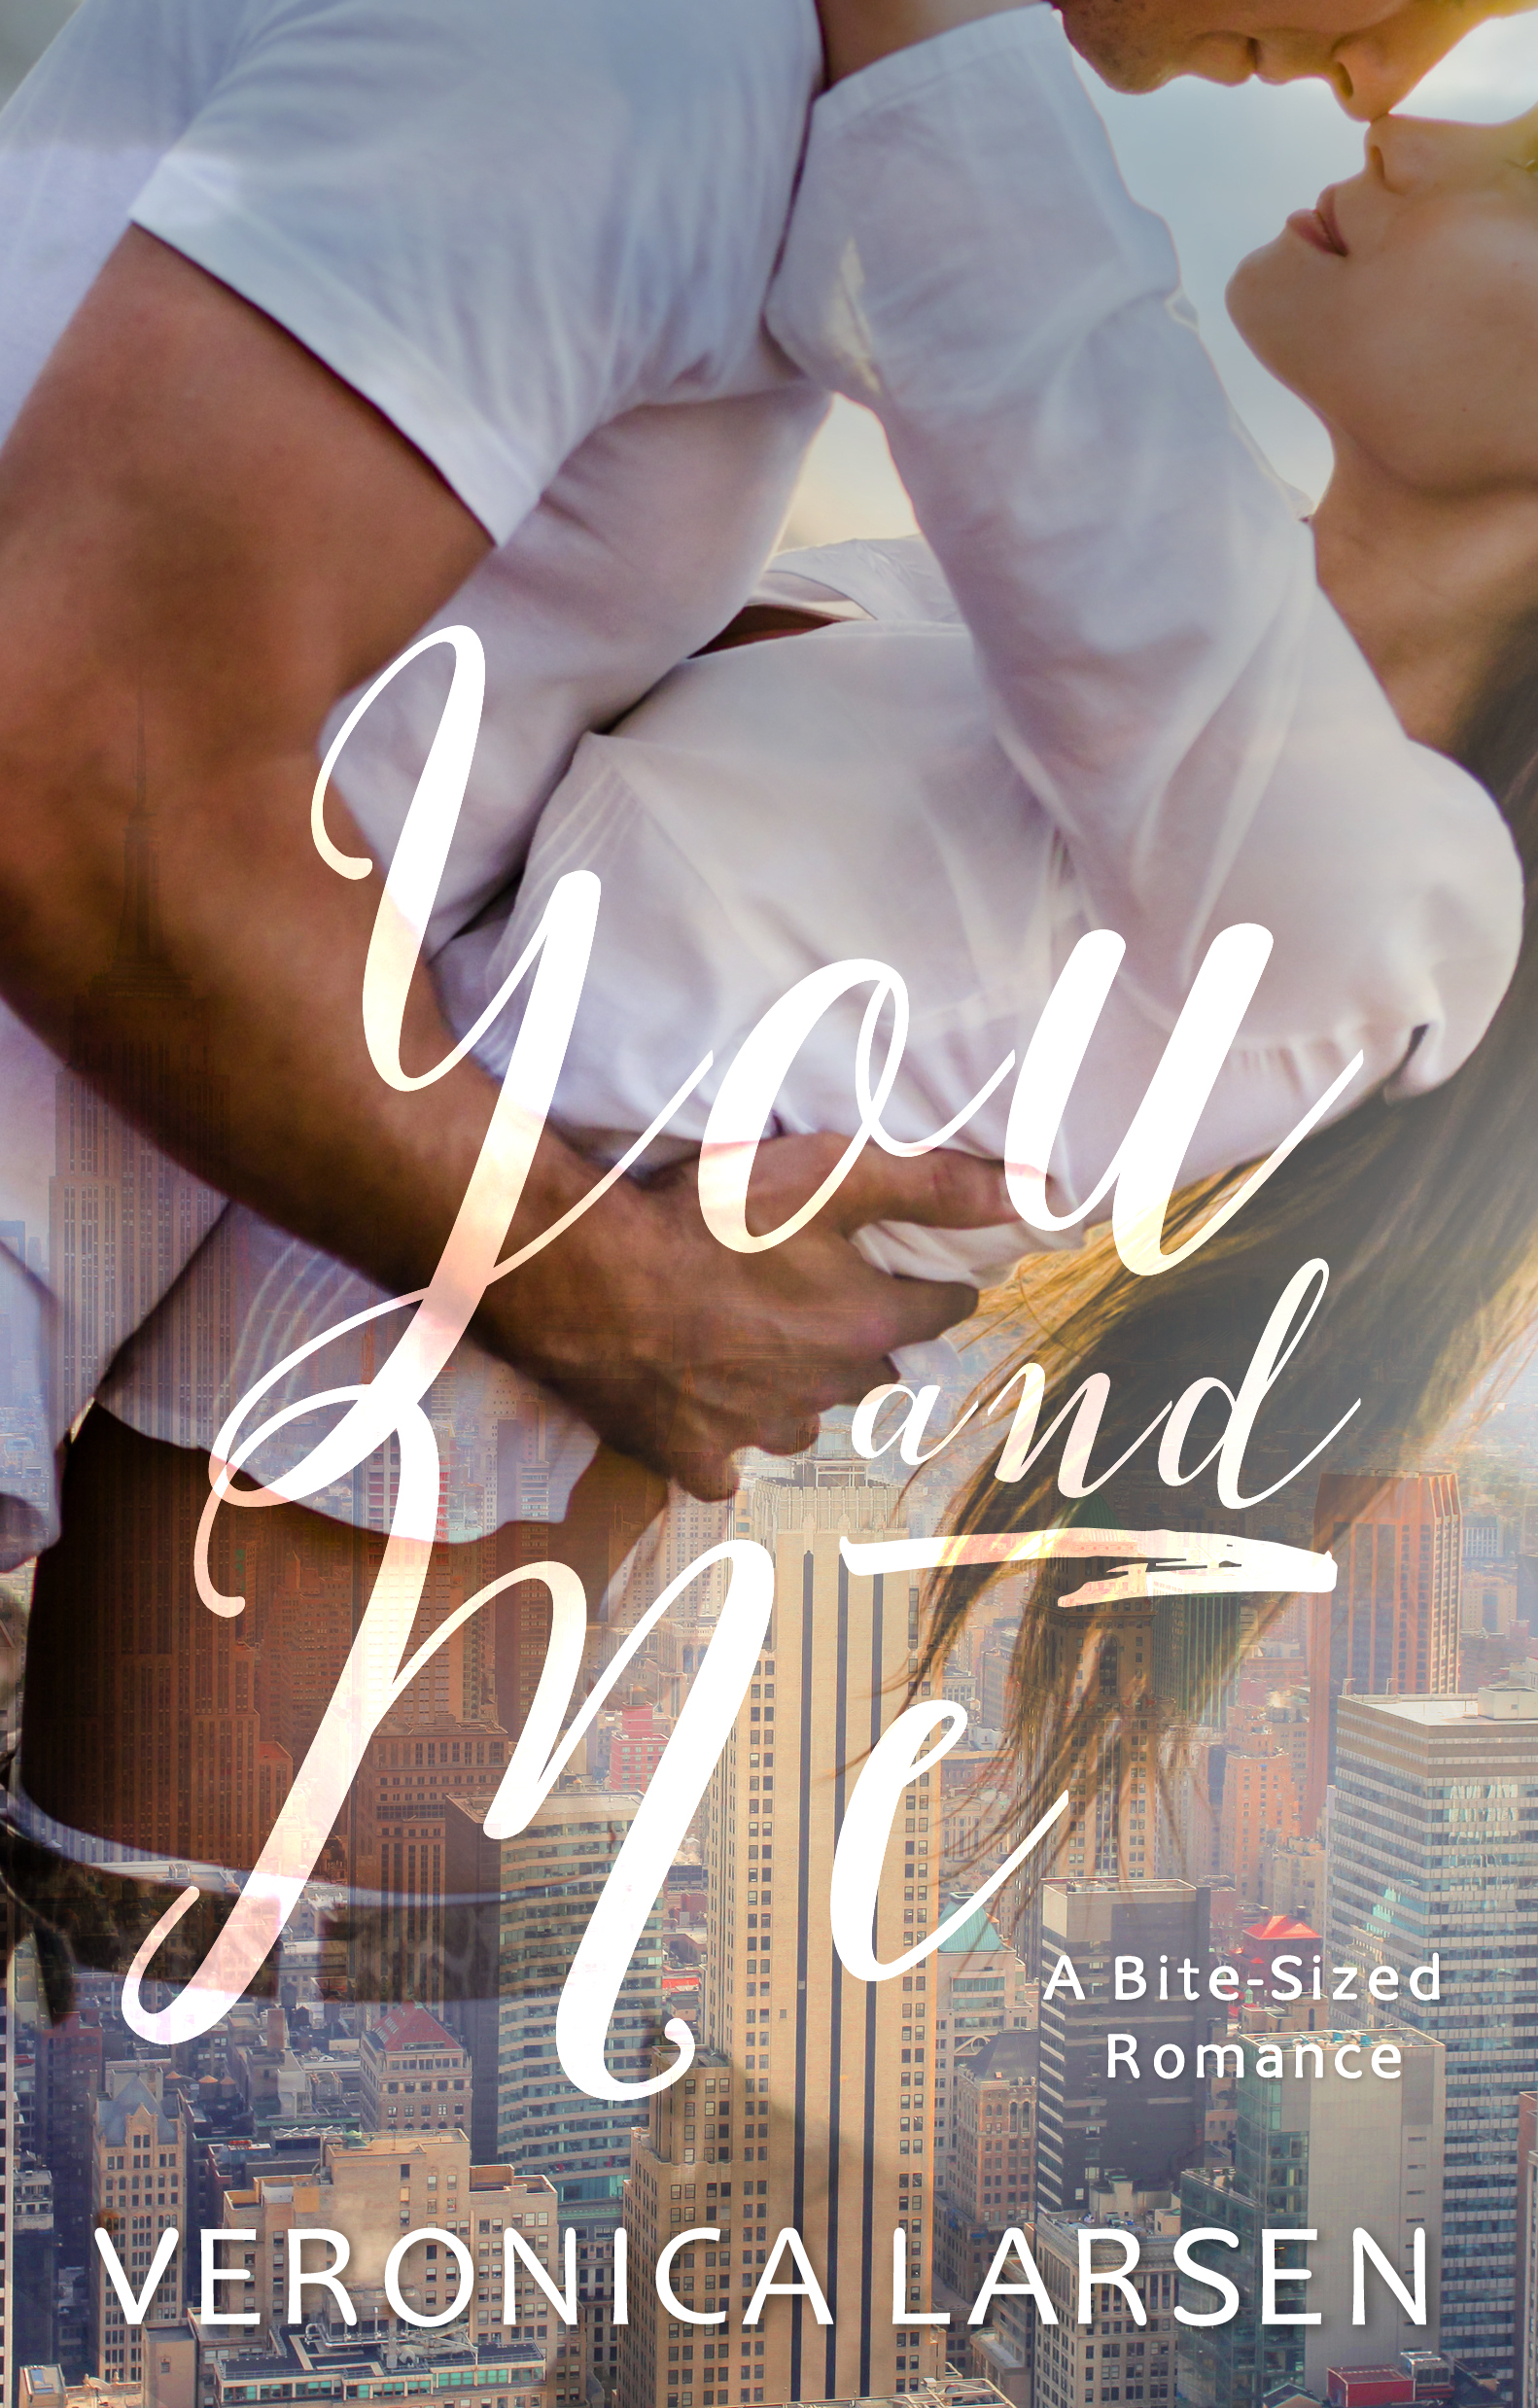 You and Me (A Bite-Sized Romance #1) by Veronica Larsen